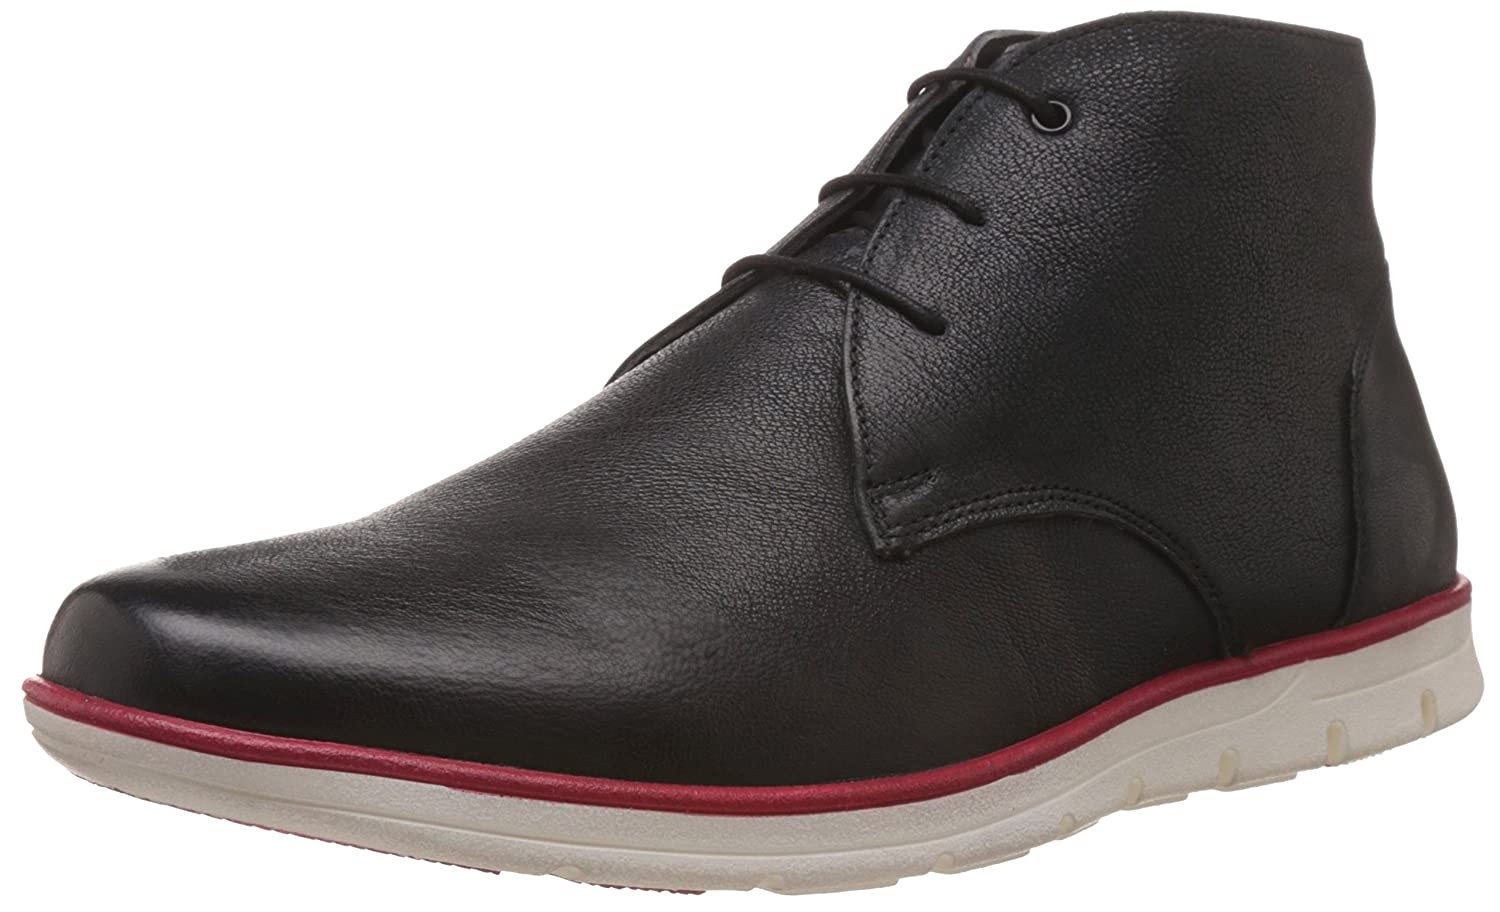 Bata Men's Nate Leather Boots low price